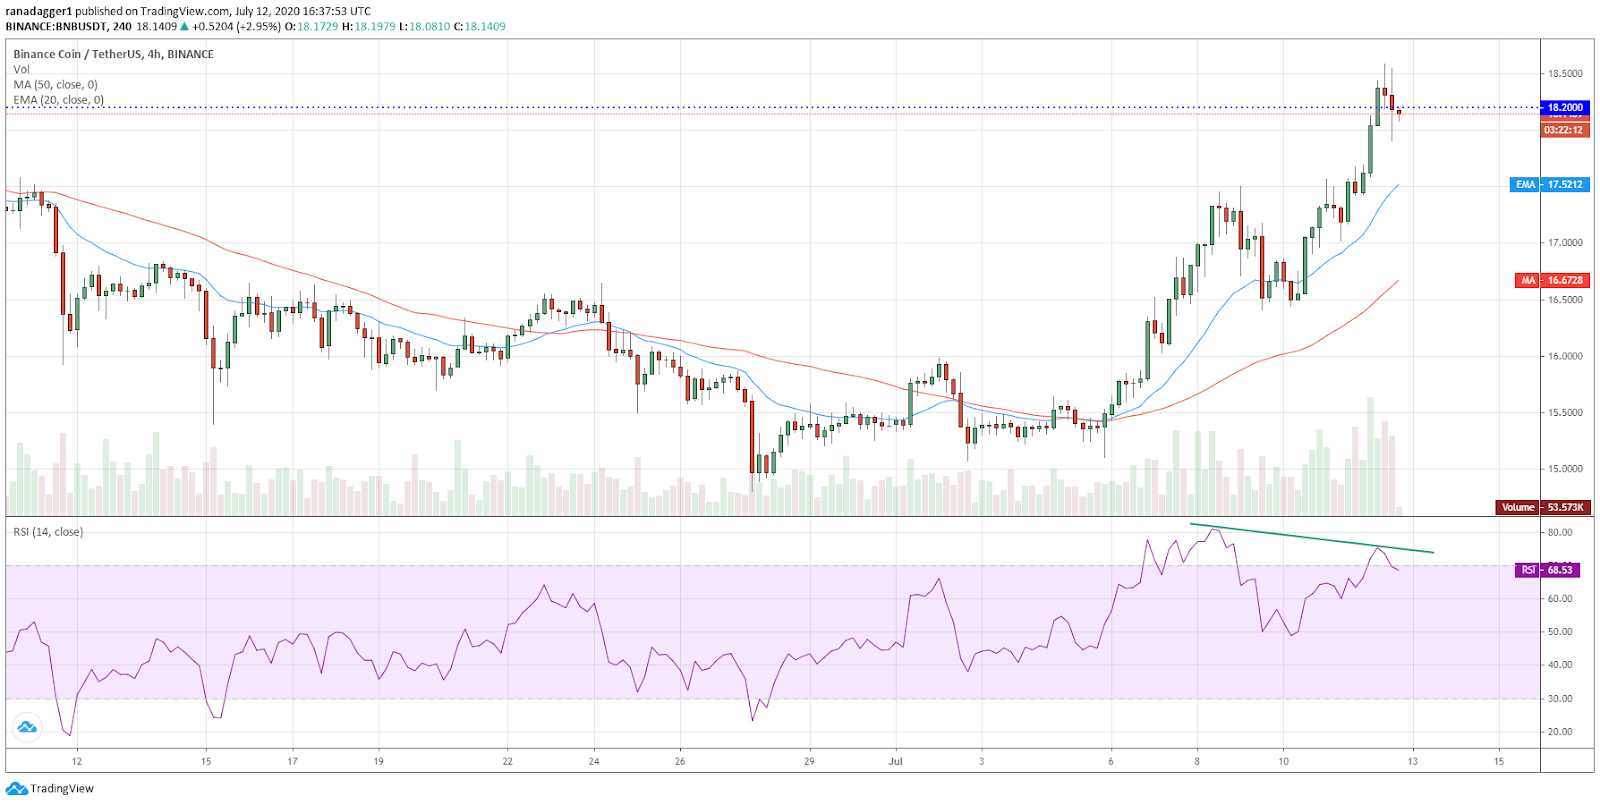 BNB/USD 4-hour chart. Source: TradingView